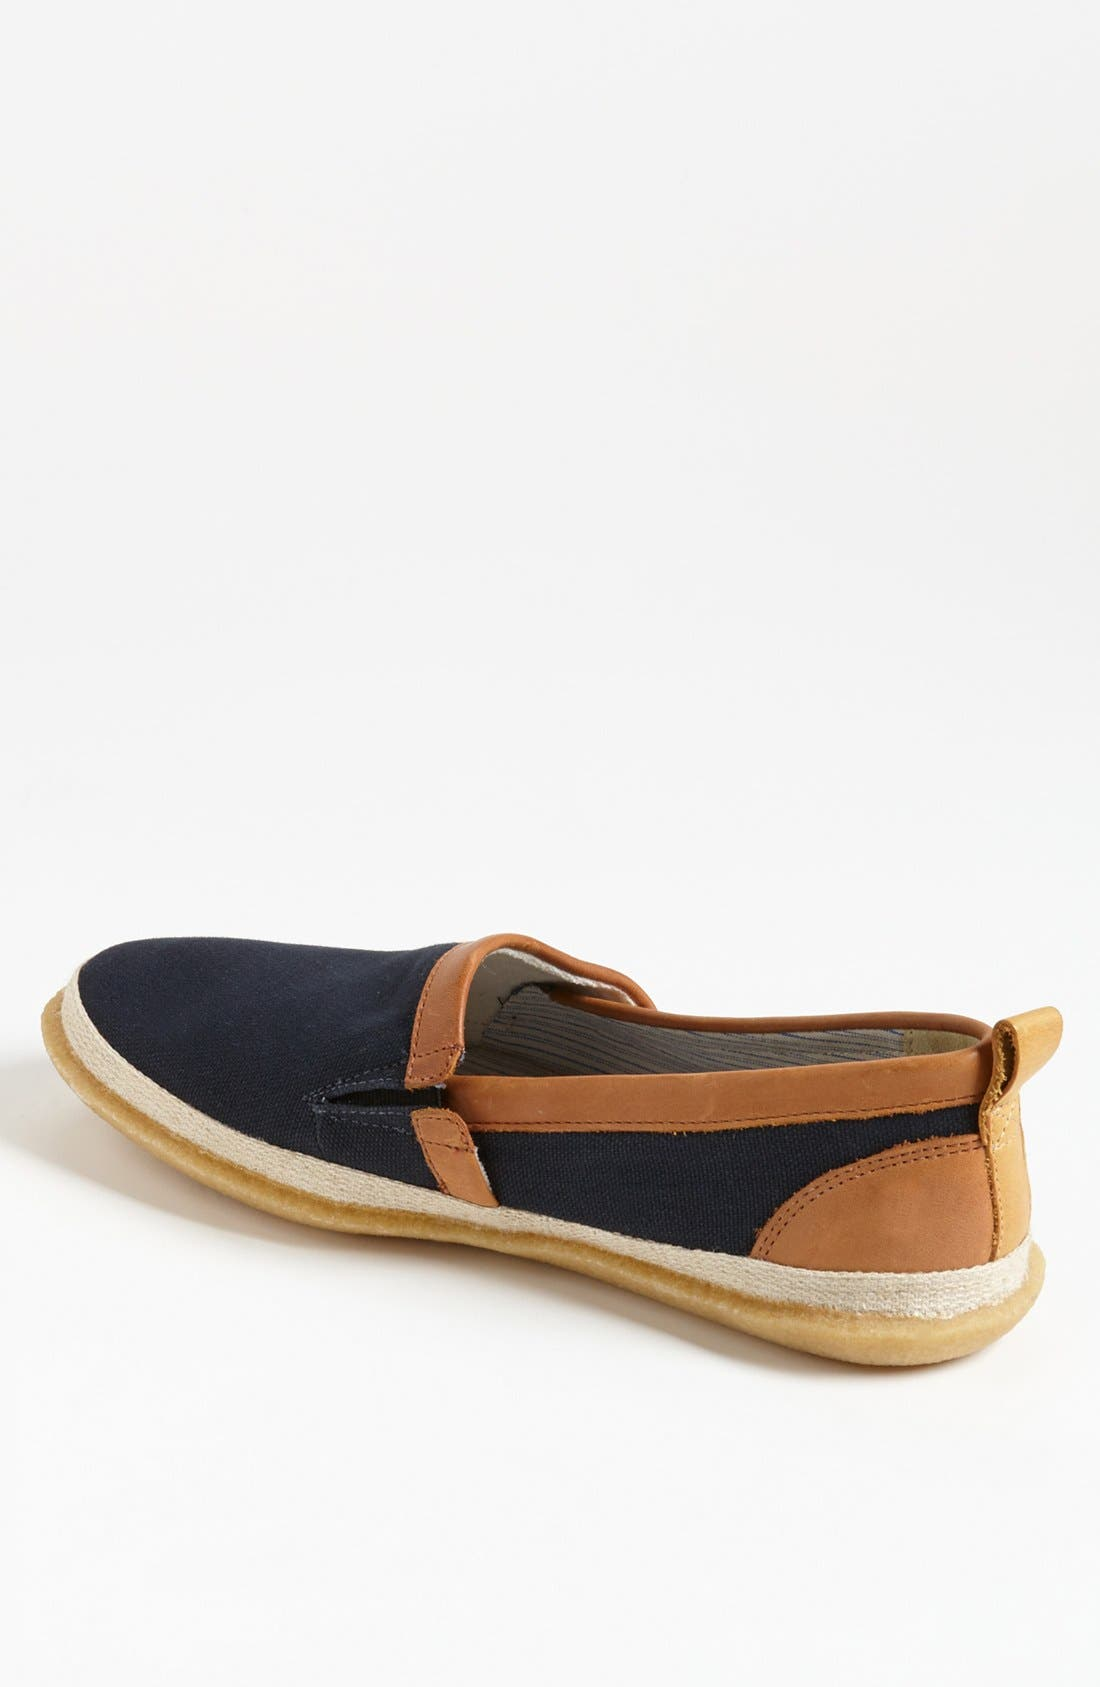 Alternate Image 2  - J SHOES 'Anglo' Slip-On